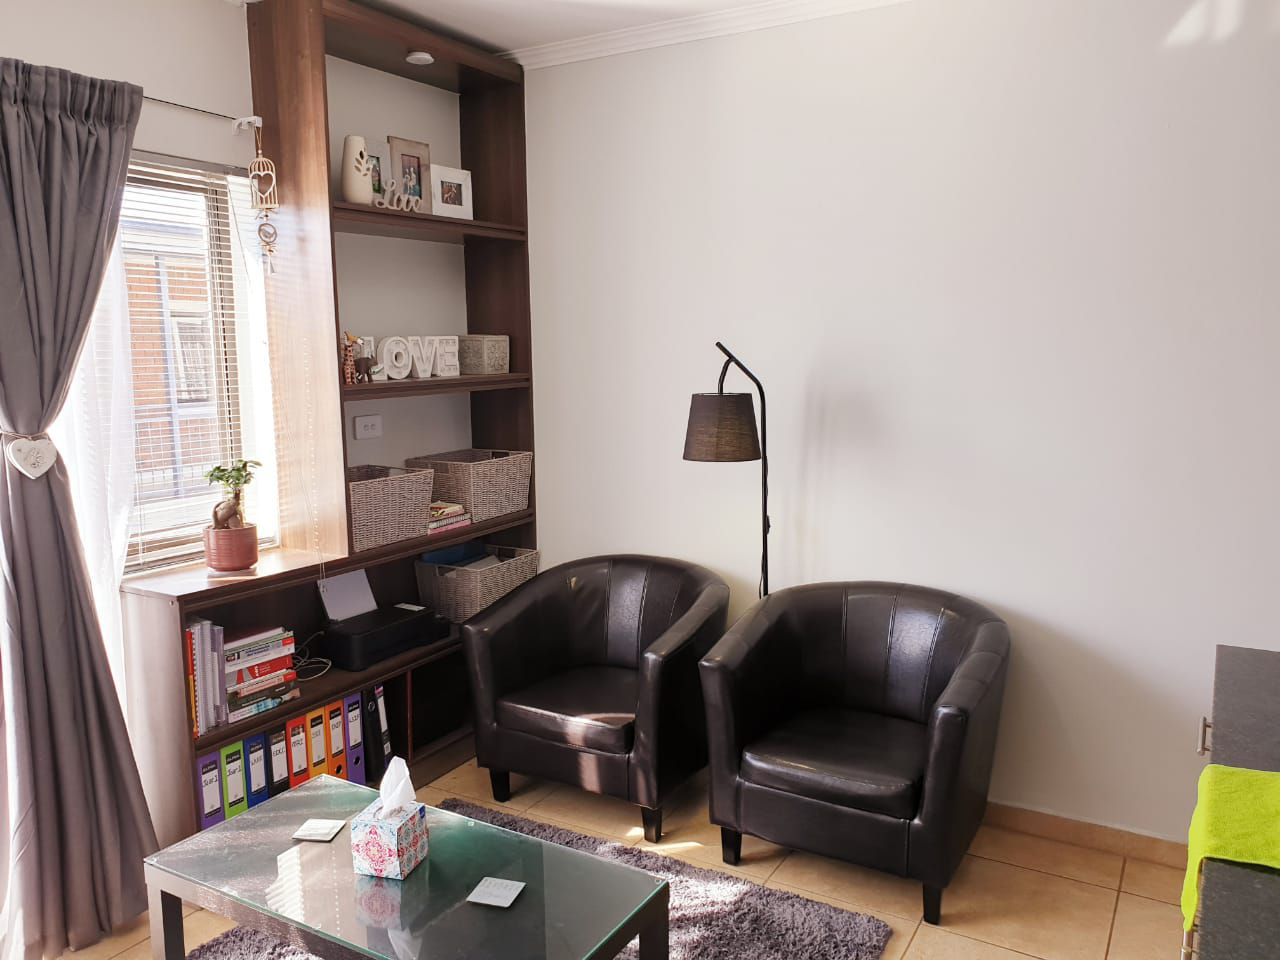 Apartment in Bult - WhatsApp Image 2019-04-30 at 14.18.48.jpeg